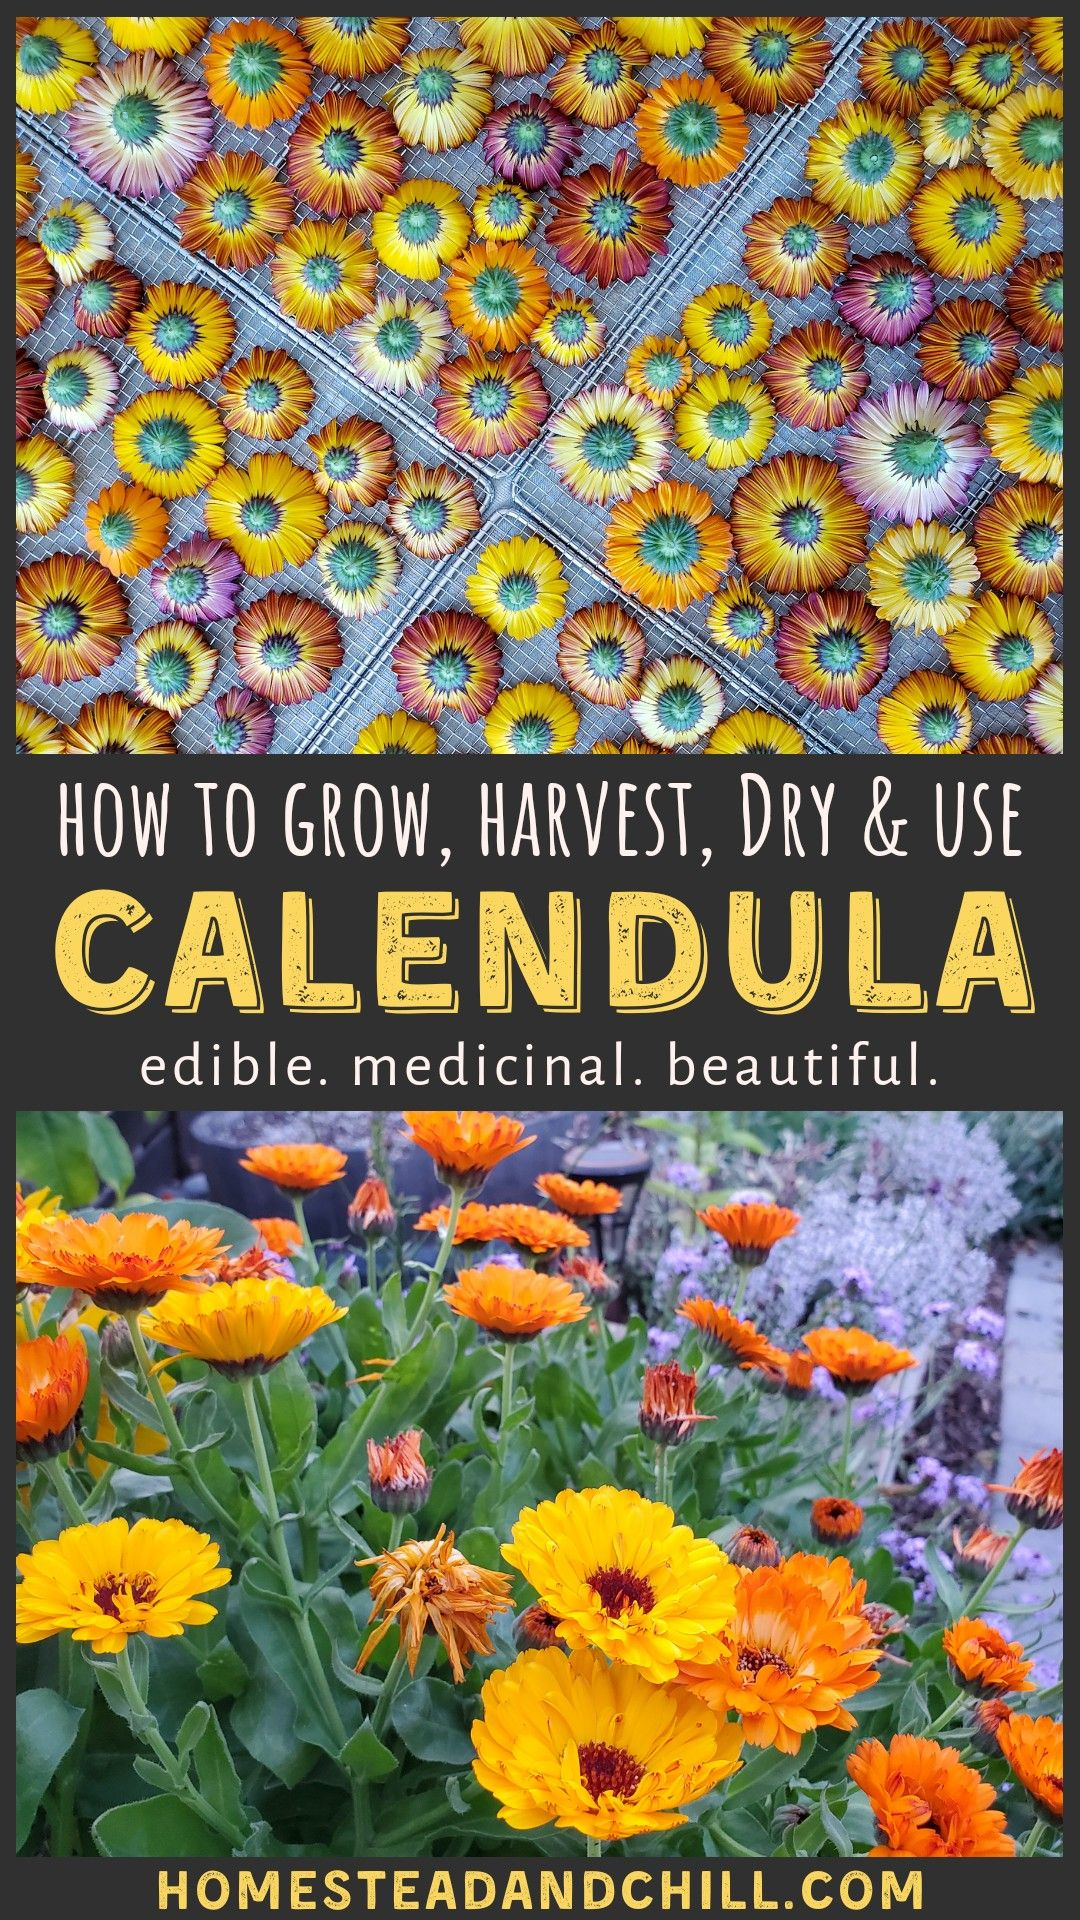 All About Calendula How to Grow, Harvest, Dry, & Use Calendula Flowers is part of Pollinator garden, Medicinal plants, Herbalism, Medicinal herbs, Growing herbs, Edible plants - Come learn how to grow, harvest, dry, and use calendula  A beautiful addition to any garden, it is also edible and has many healing medicinal qualities!